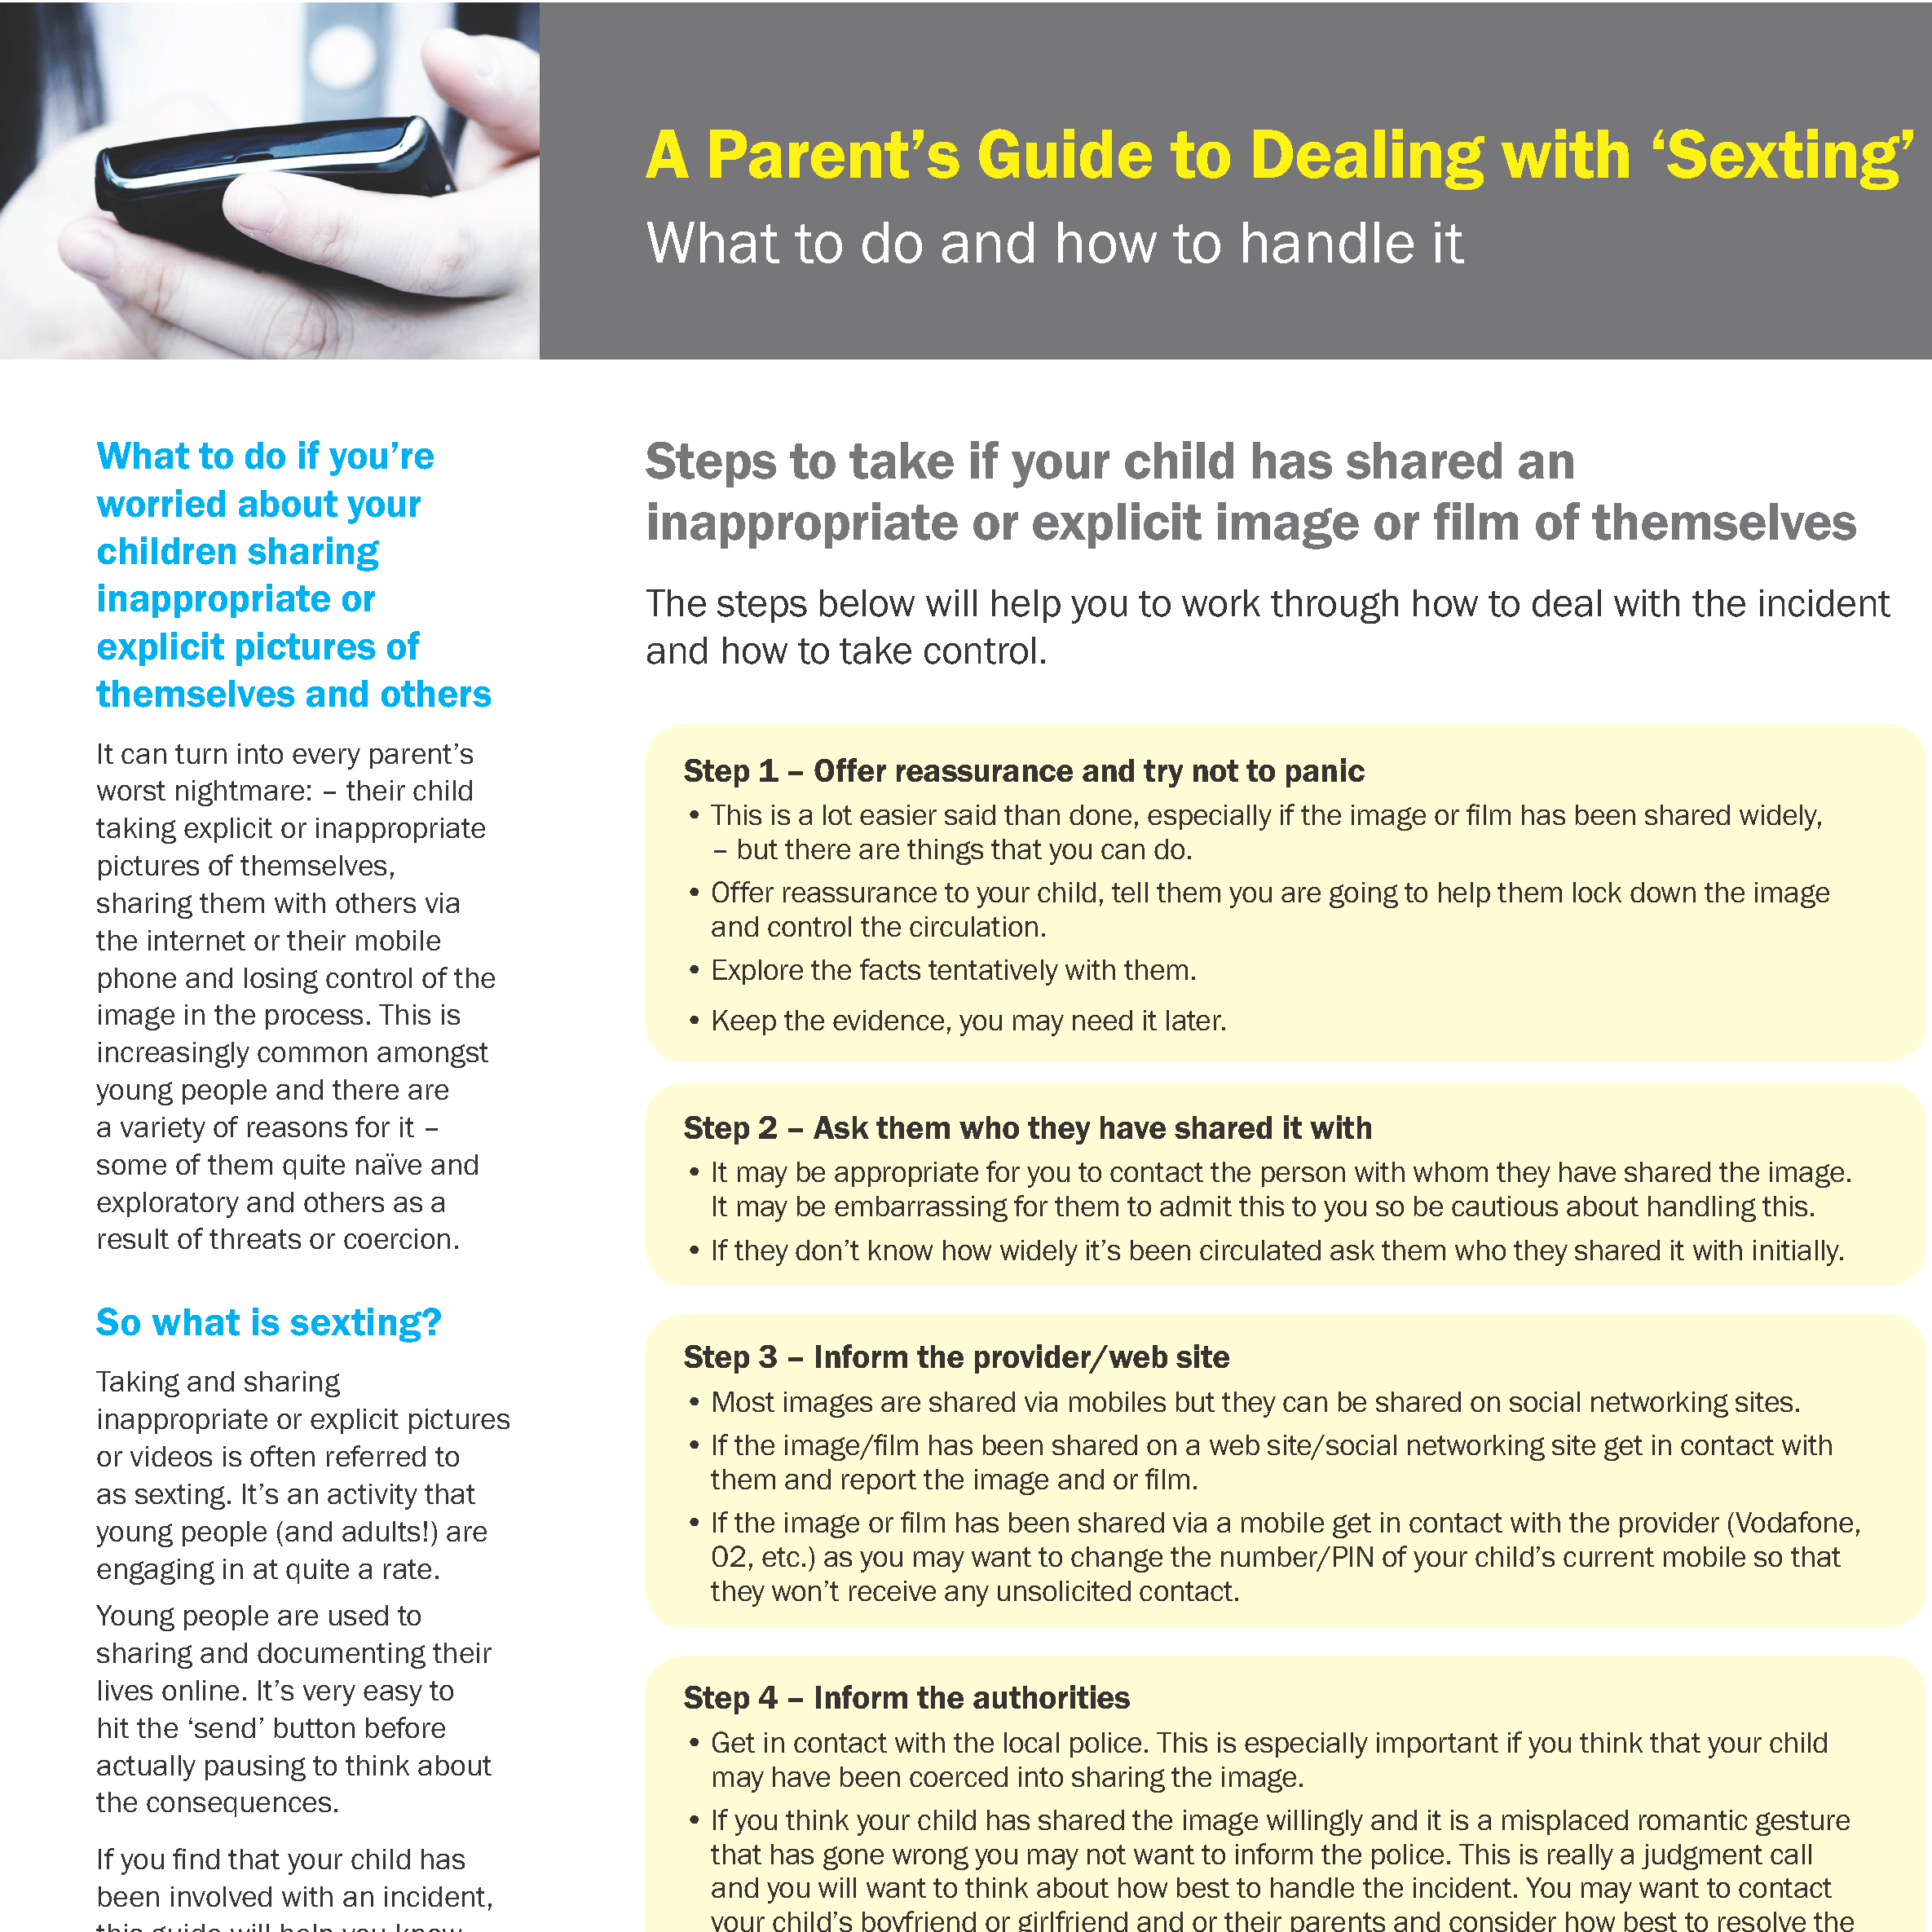 A Parents Guide to Dealing with Sexting 26SEP13 Page 1